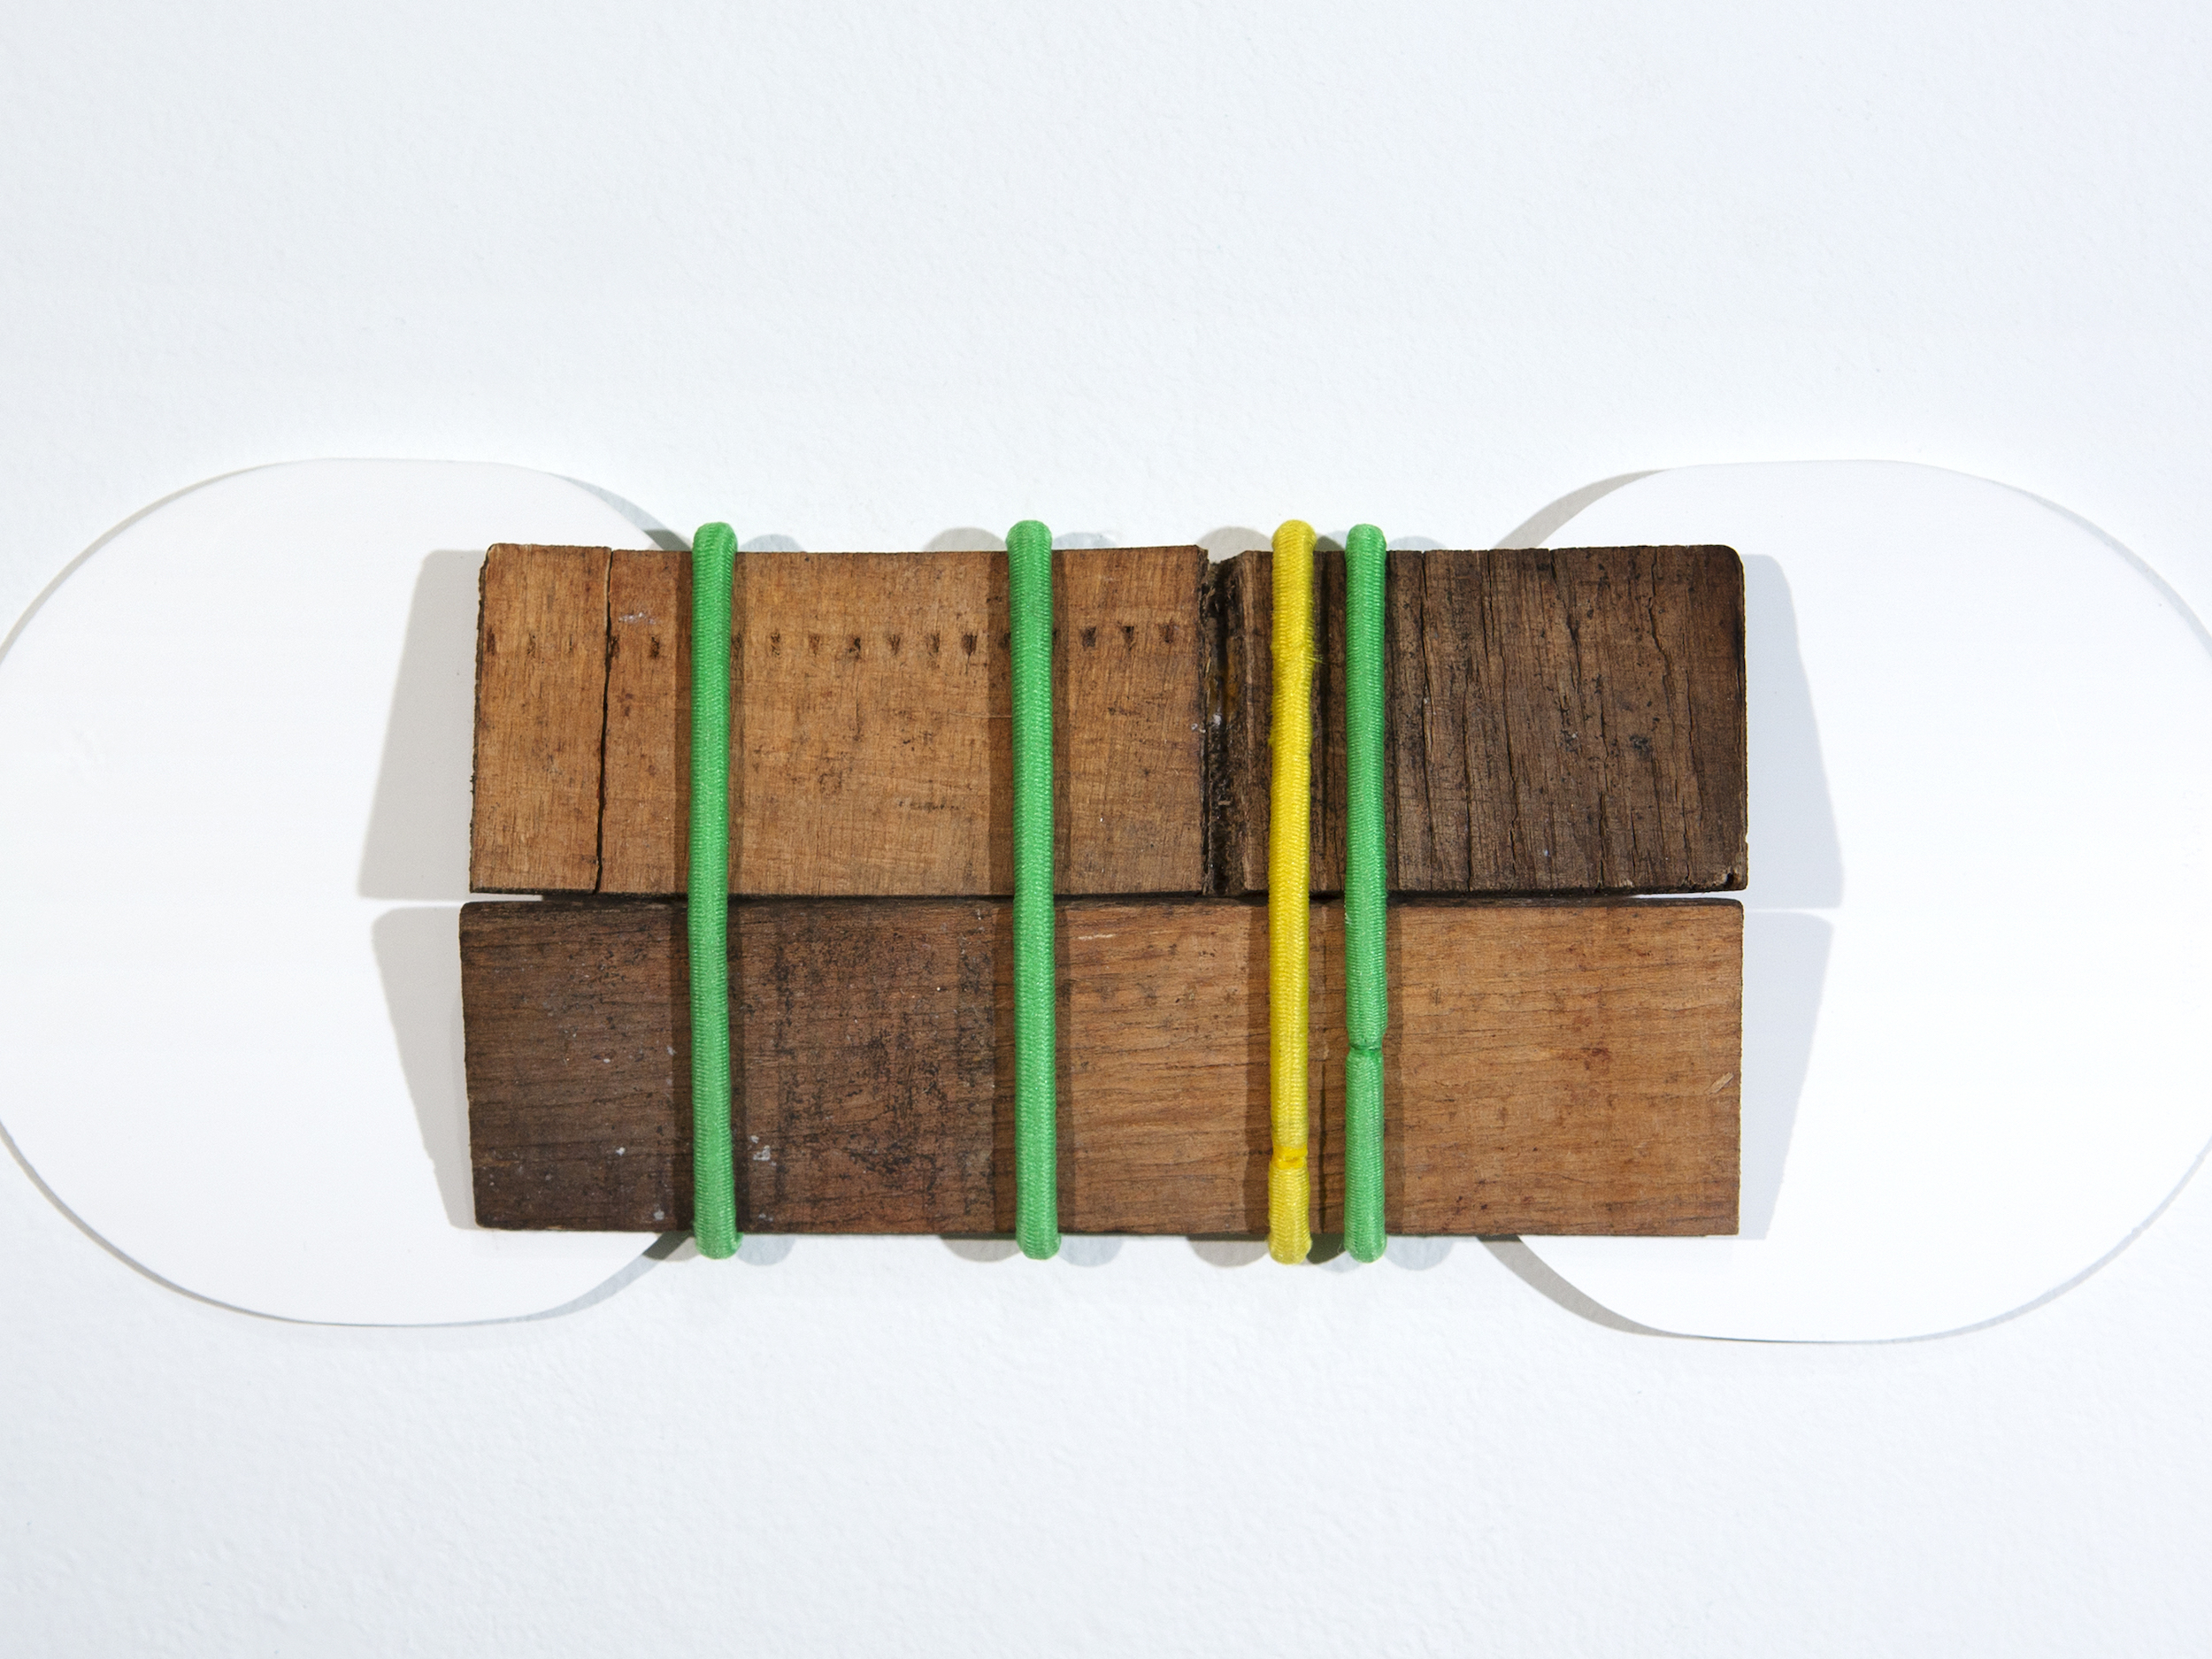 Walking out of time   (detail)  Used invisible socks insert, found wood and hair tie  9 1/2 x 3 1/2 x 1/2  2018